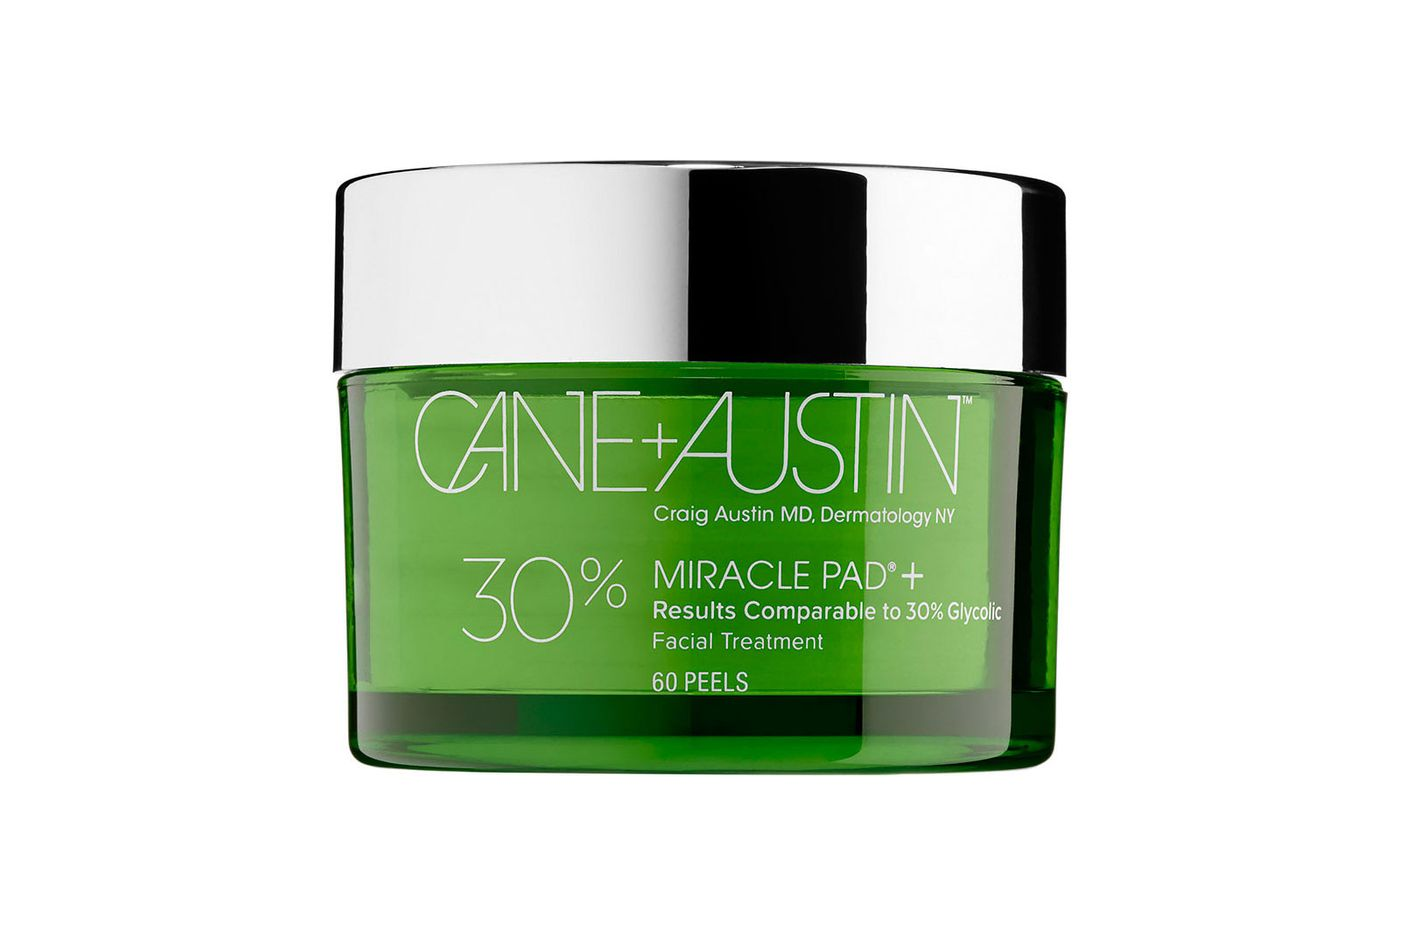 Cane + Austin Miracle Pad + 30% Glycolic Facial Treatment